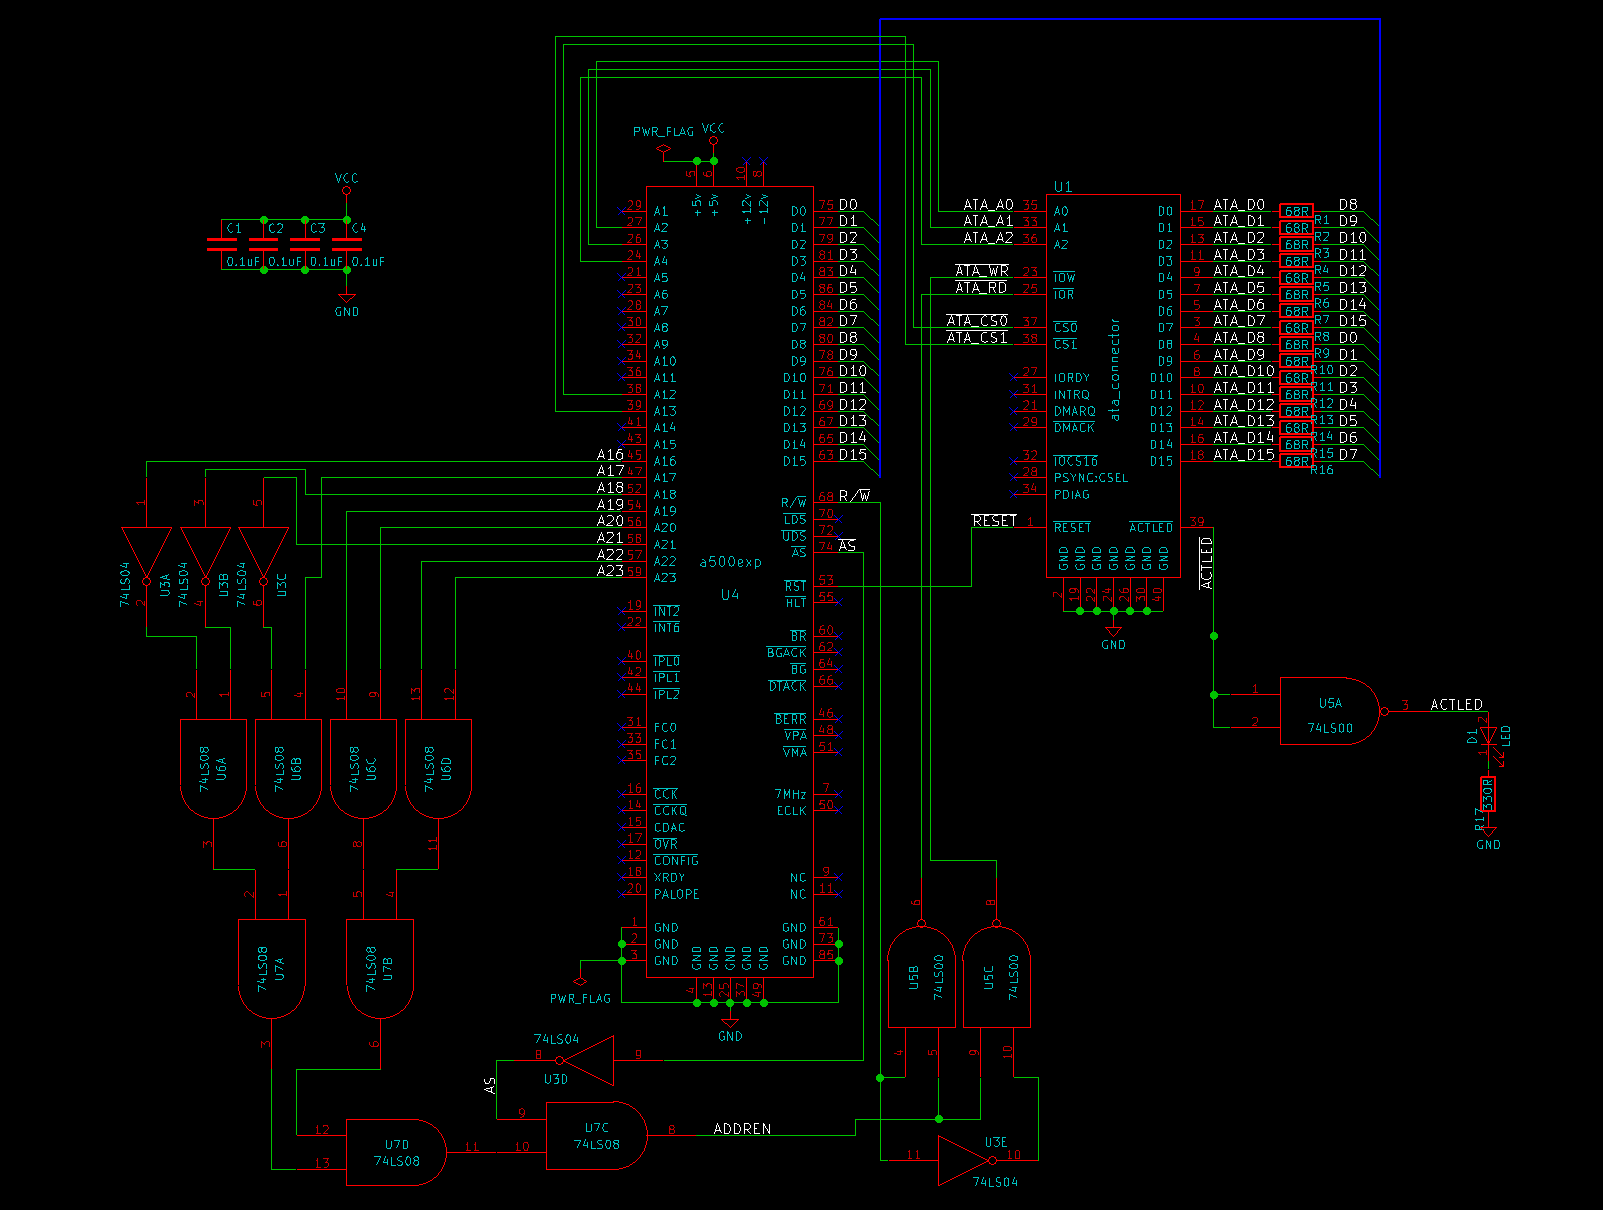 Hard Drive Circuit Board Schematic Diagram Trusted Wiring Parts Pcb Logic Printed 100617465 For Amiga 500 Ata Disk Interface Battery